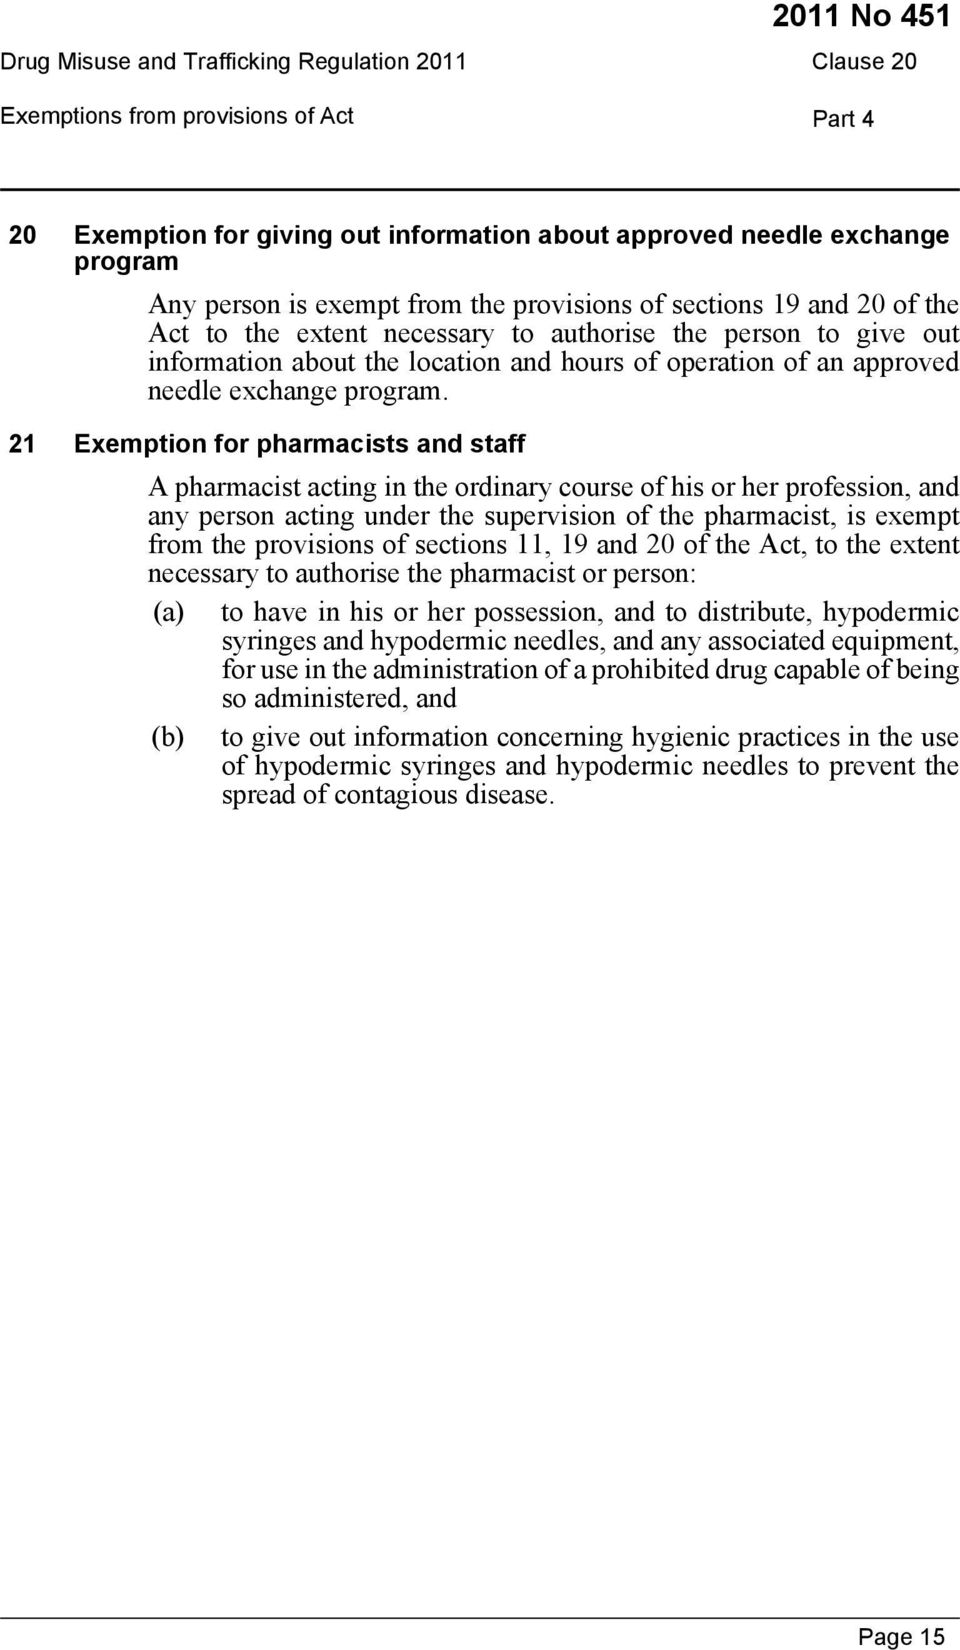 21 Exemption for pharmacists and staff A pharmacist acting in the ordinary course of his or her profession, and any person acting under the supervision of the pharmacist, is exempt from the